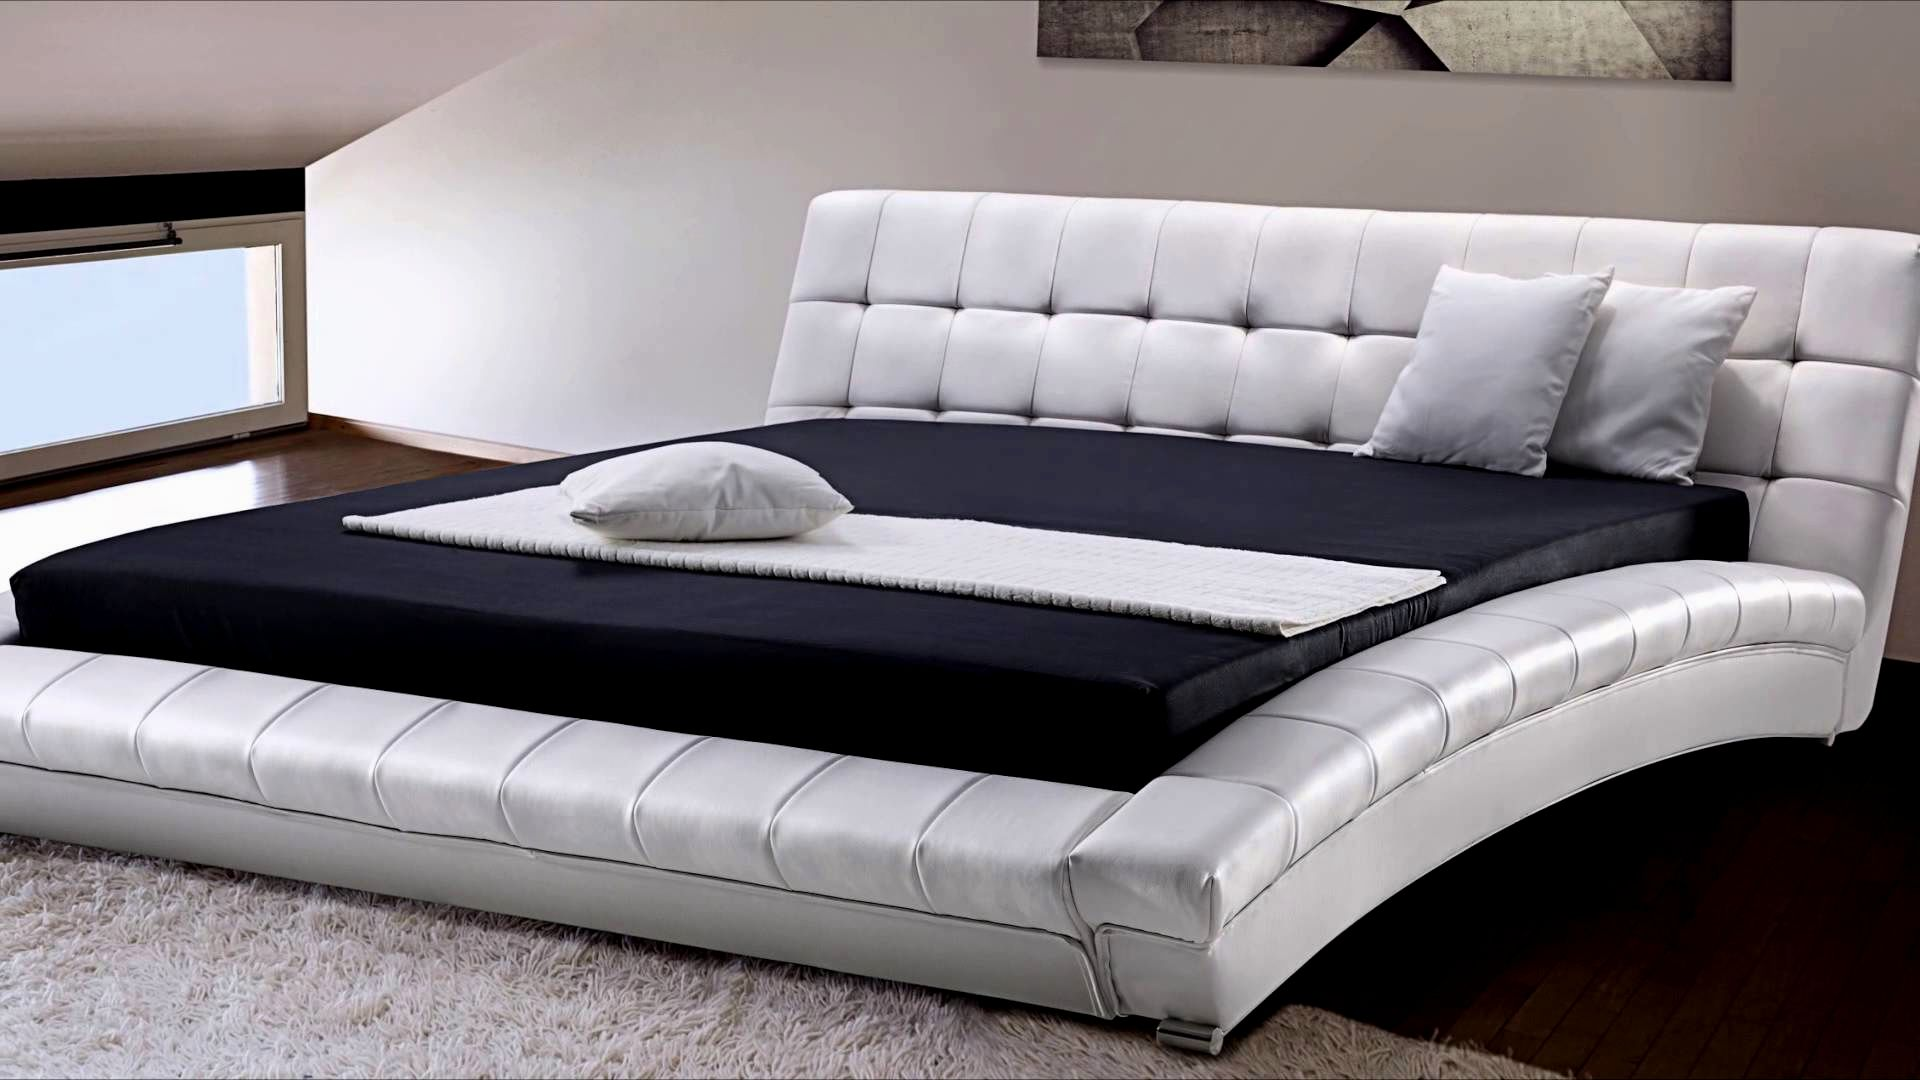 best of sofa bed with storage wallpaper-Beautiful sofa Bed with Storage Inspiration